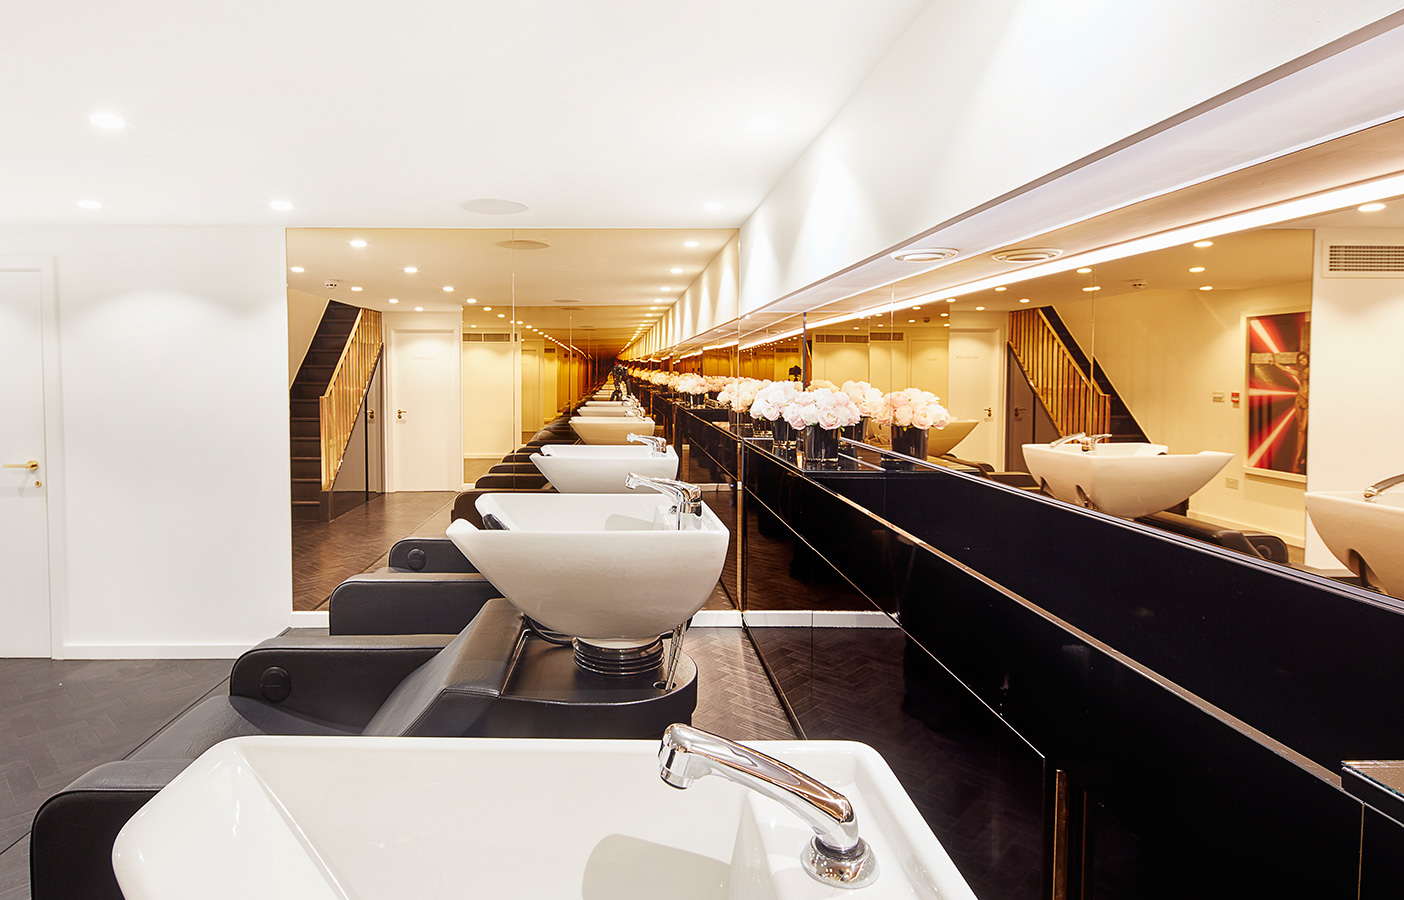 Aldworth James & Bond | Luxury Salon - architectural design by AJ&B Studio